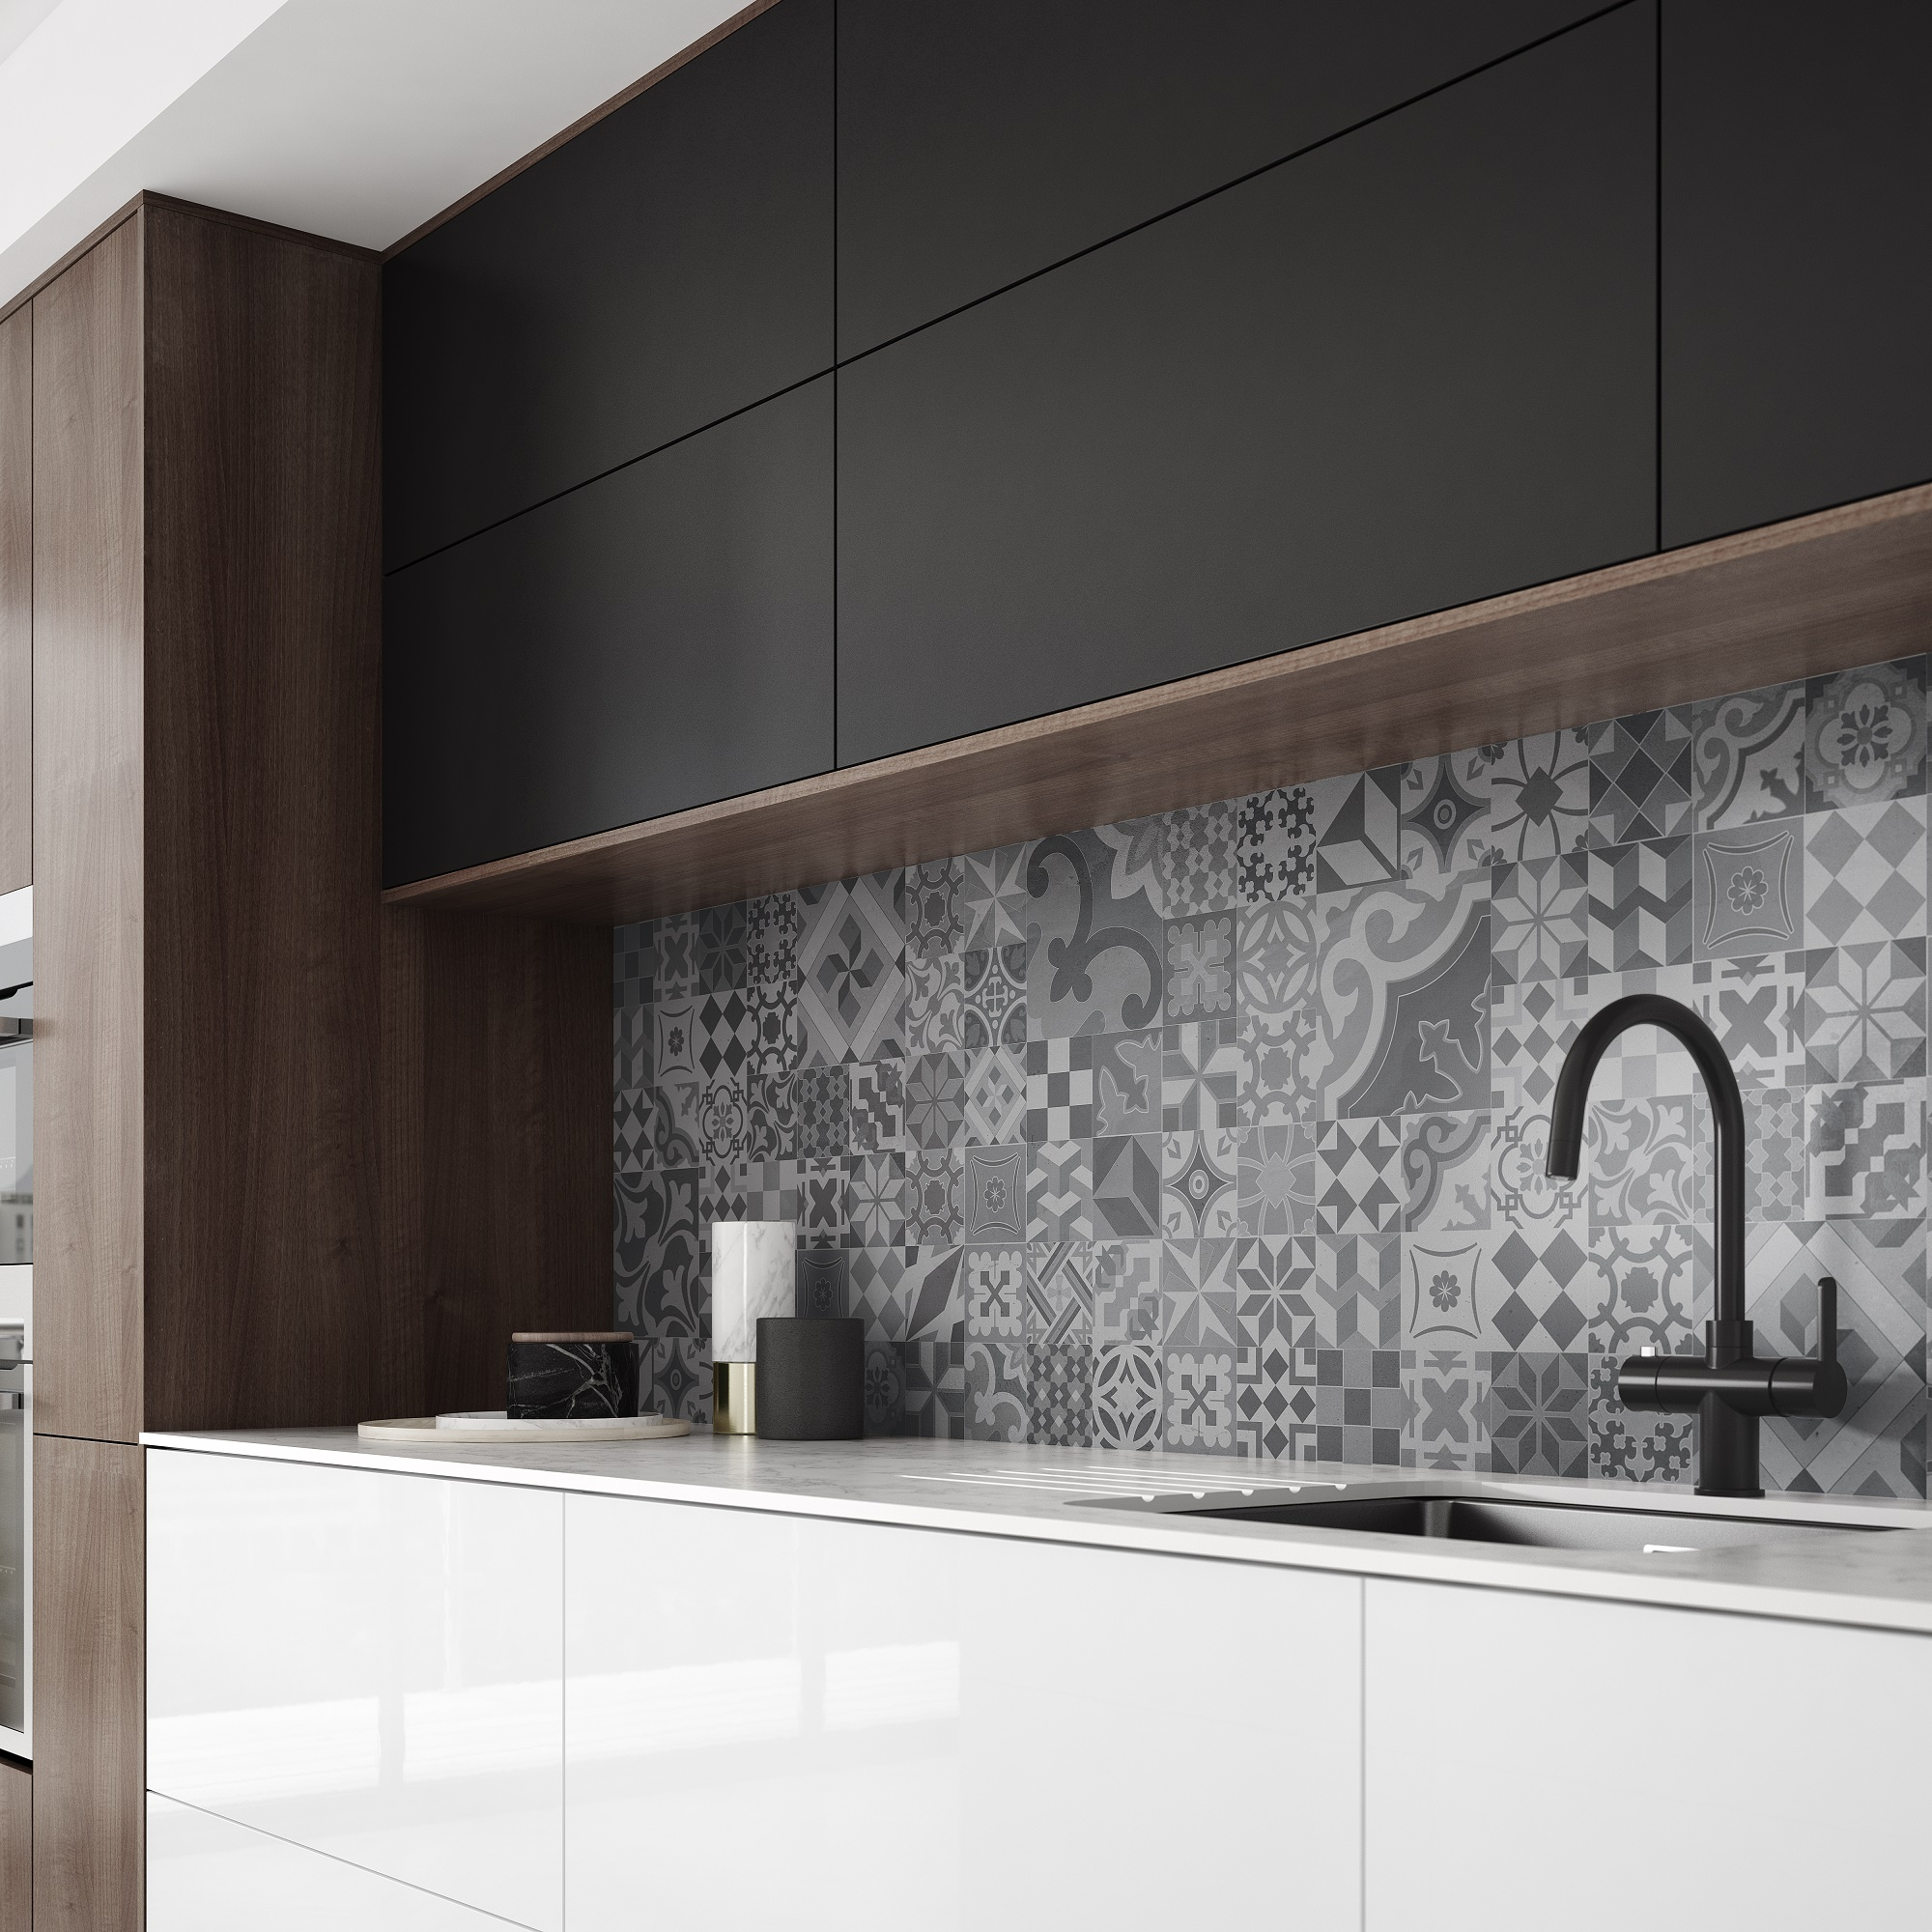 Stunning Splashbacks New From Bushboard Dra Media Management